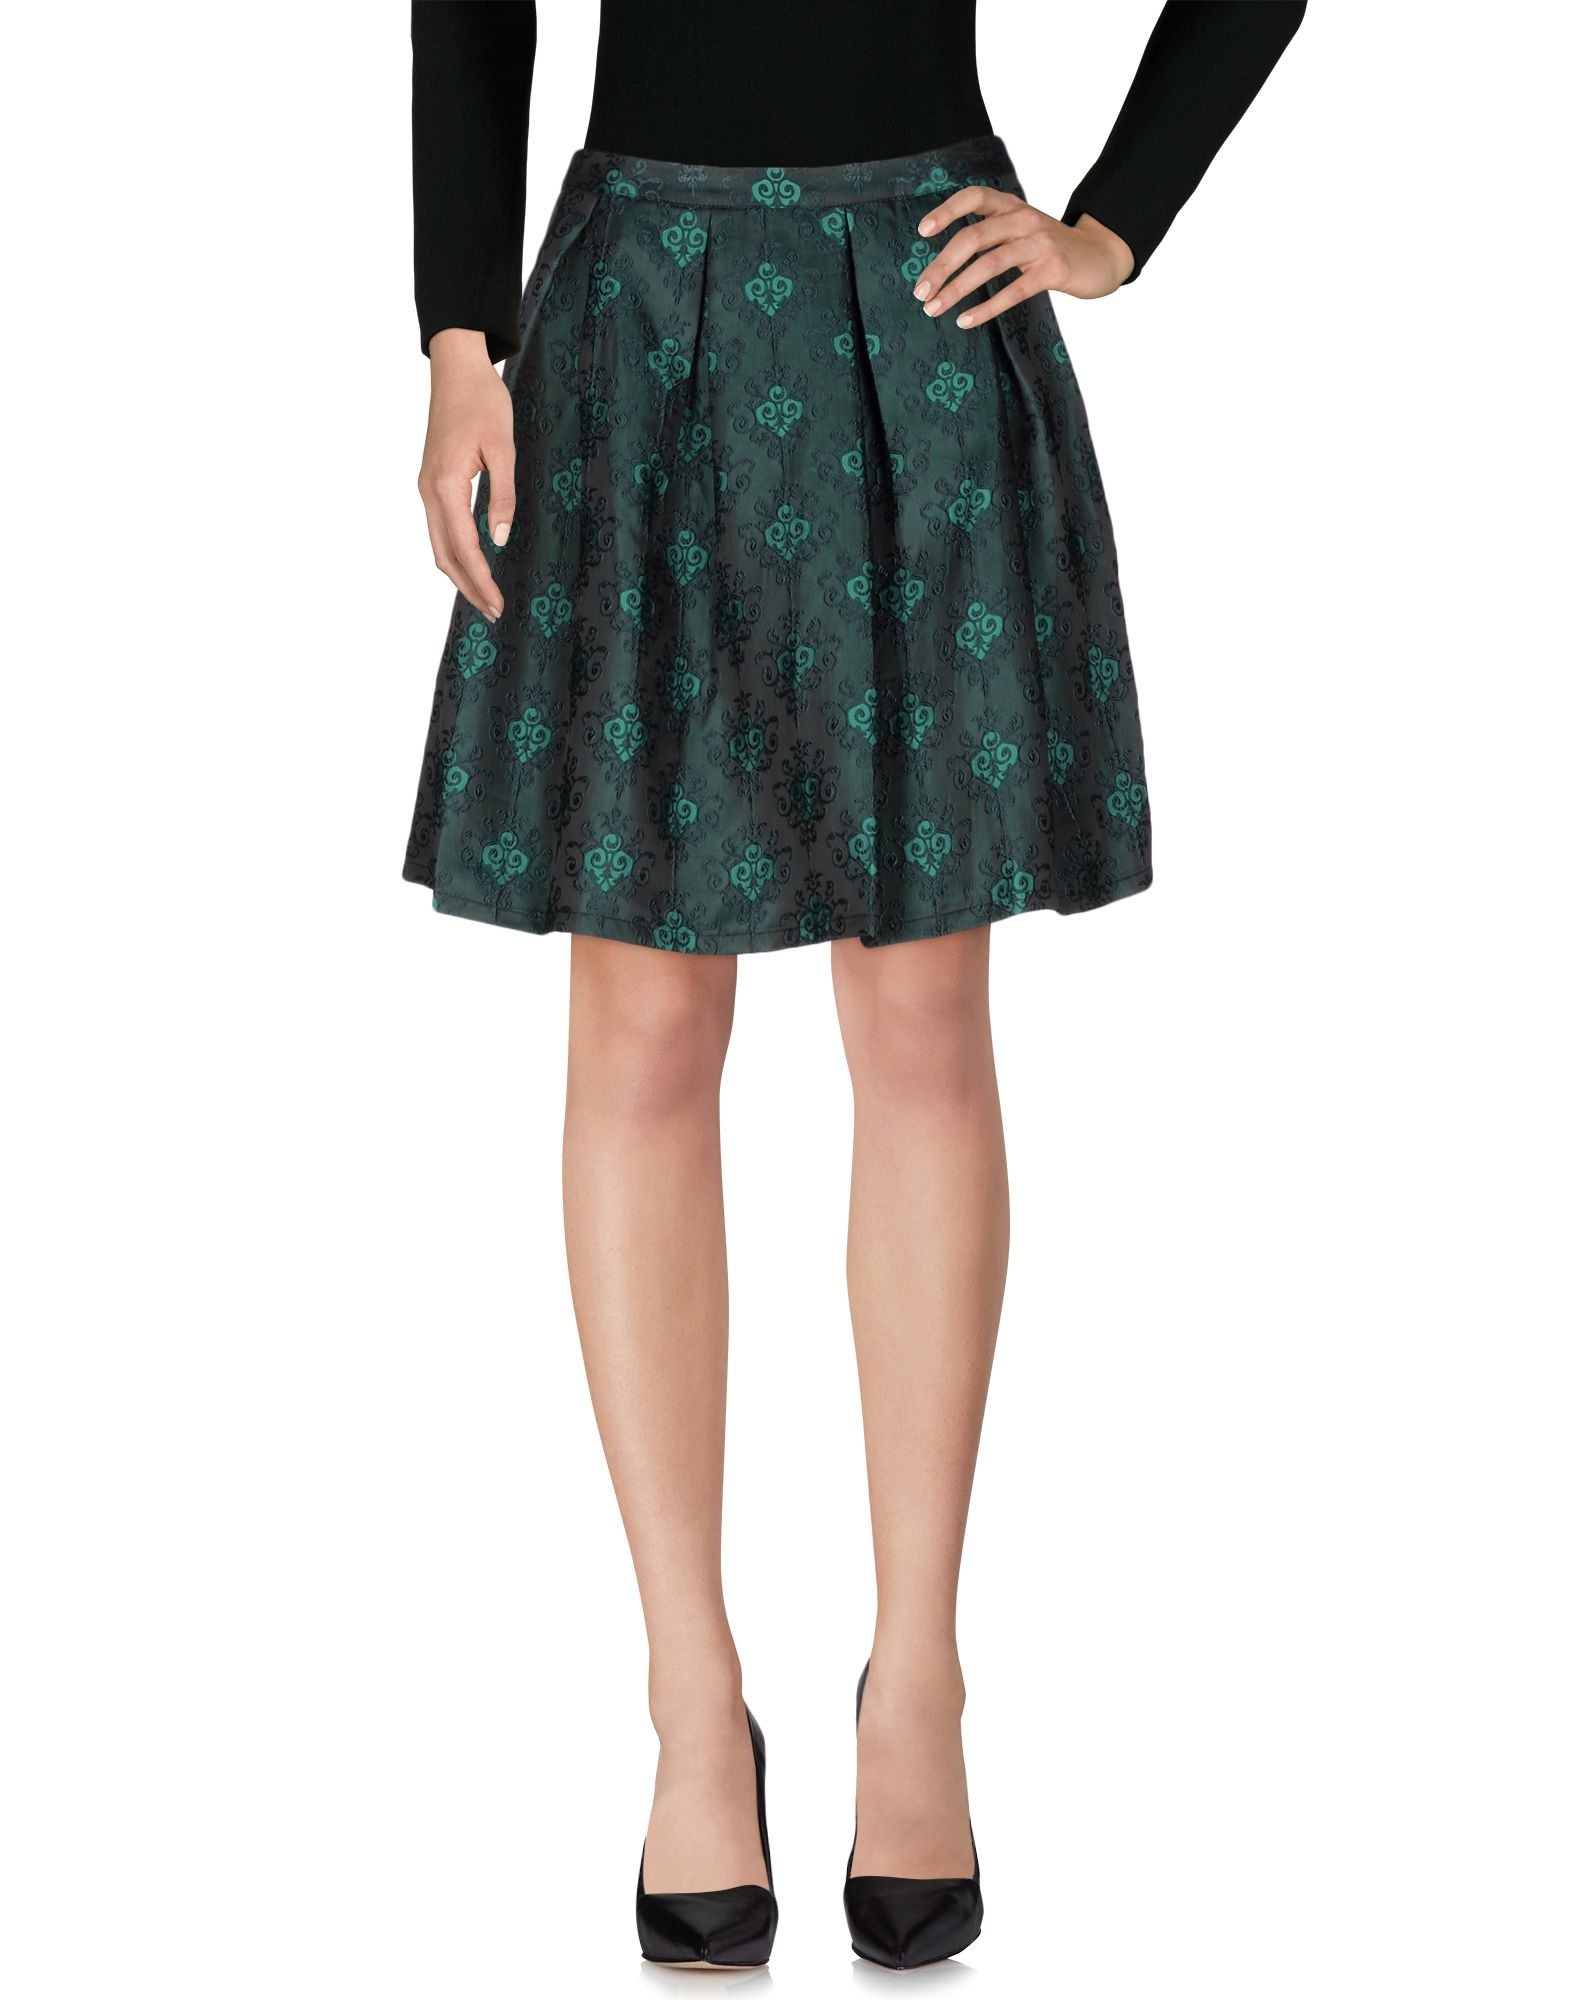 Anonyme designers Knee Length Skirt in Green